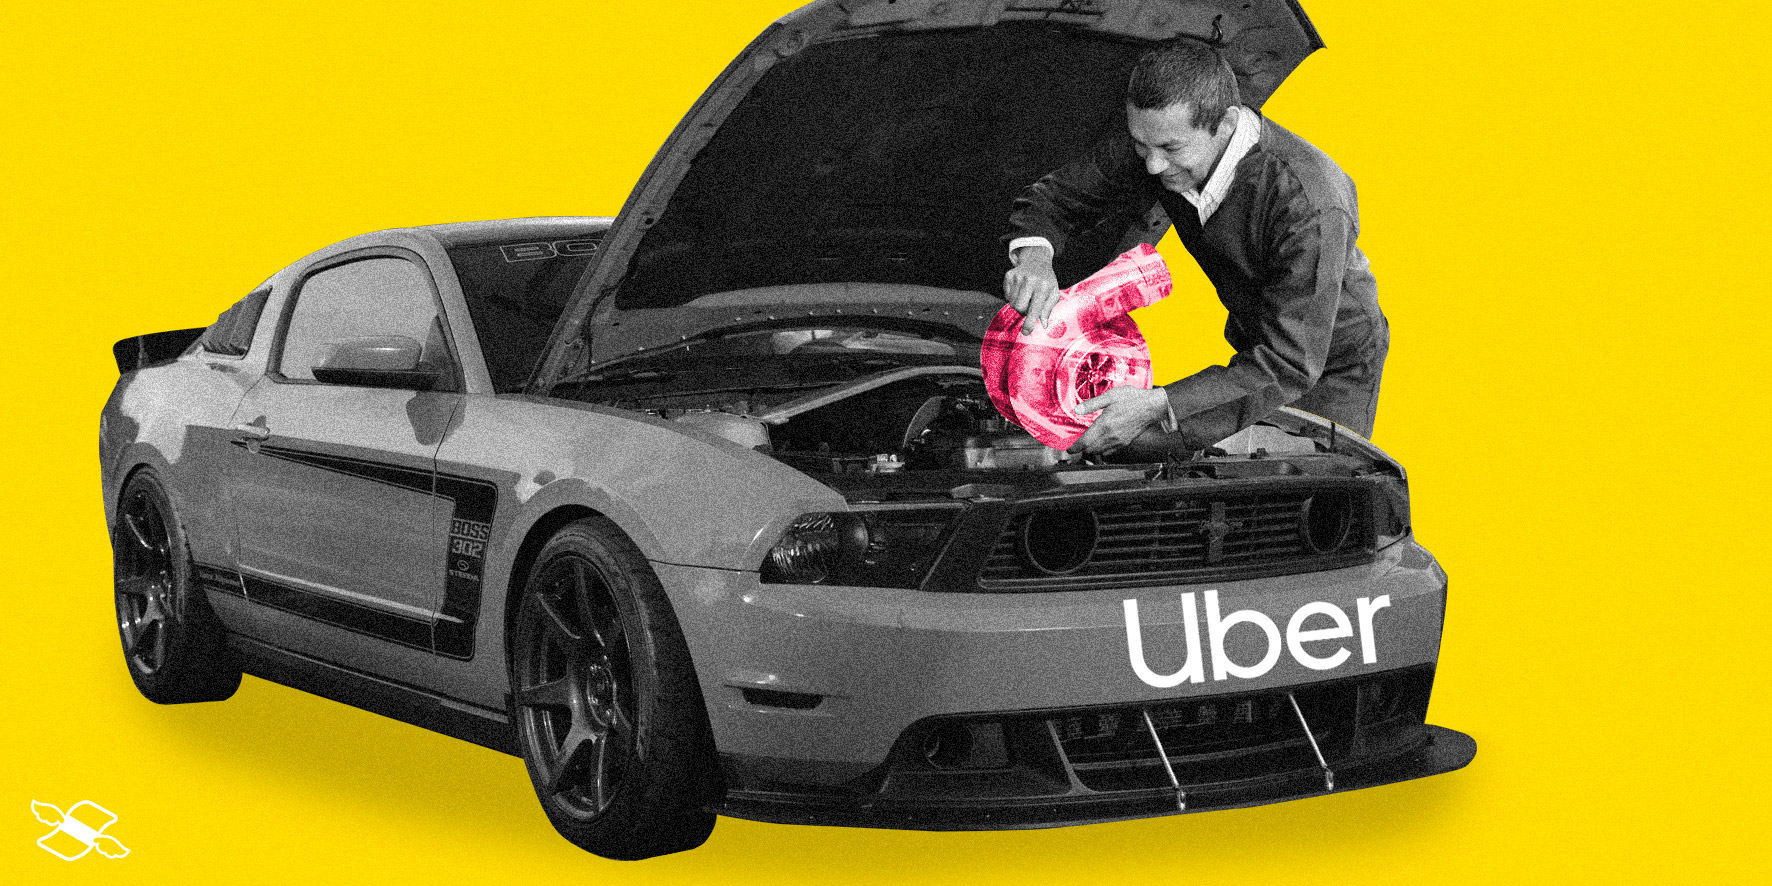 Uber expects to be profitable by the end of 2020, despite losing over $600 million in the last quarter of 2019.